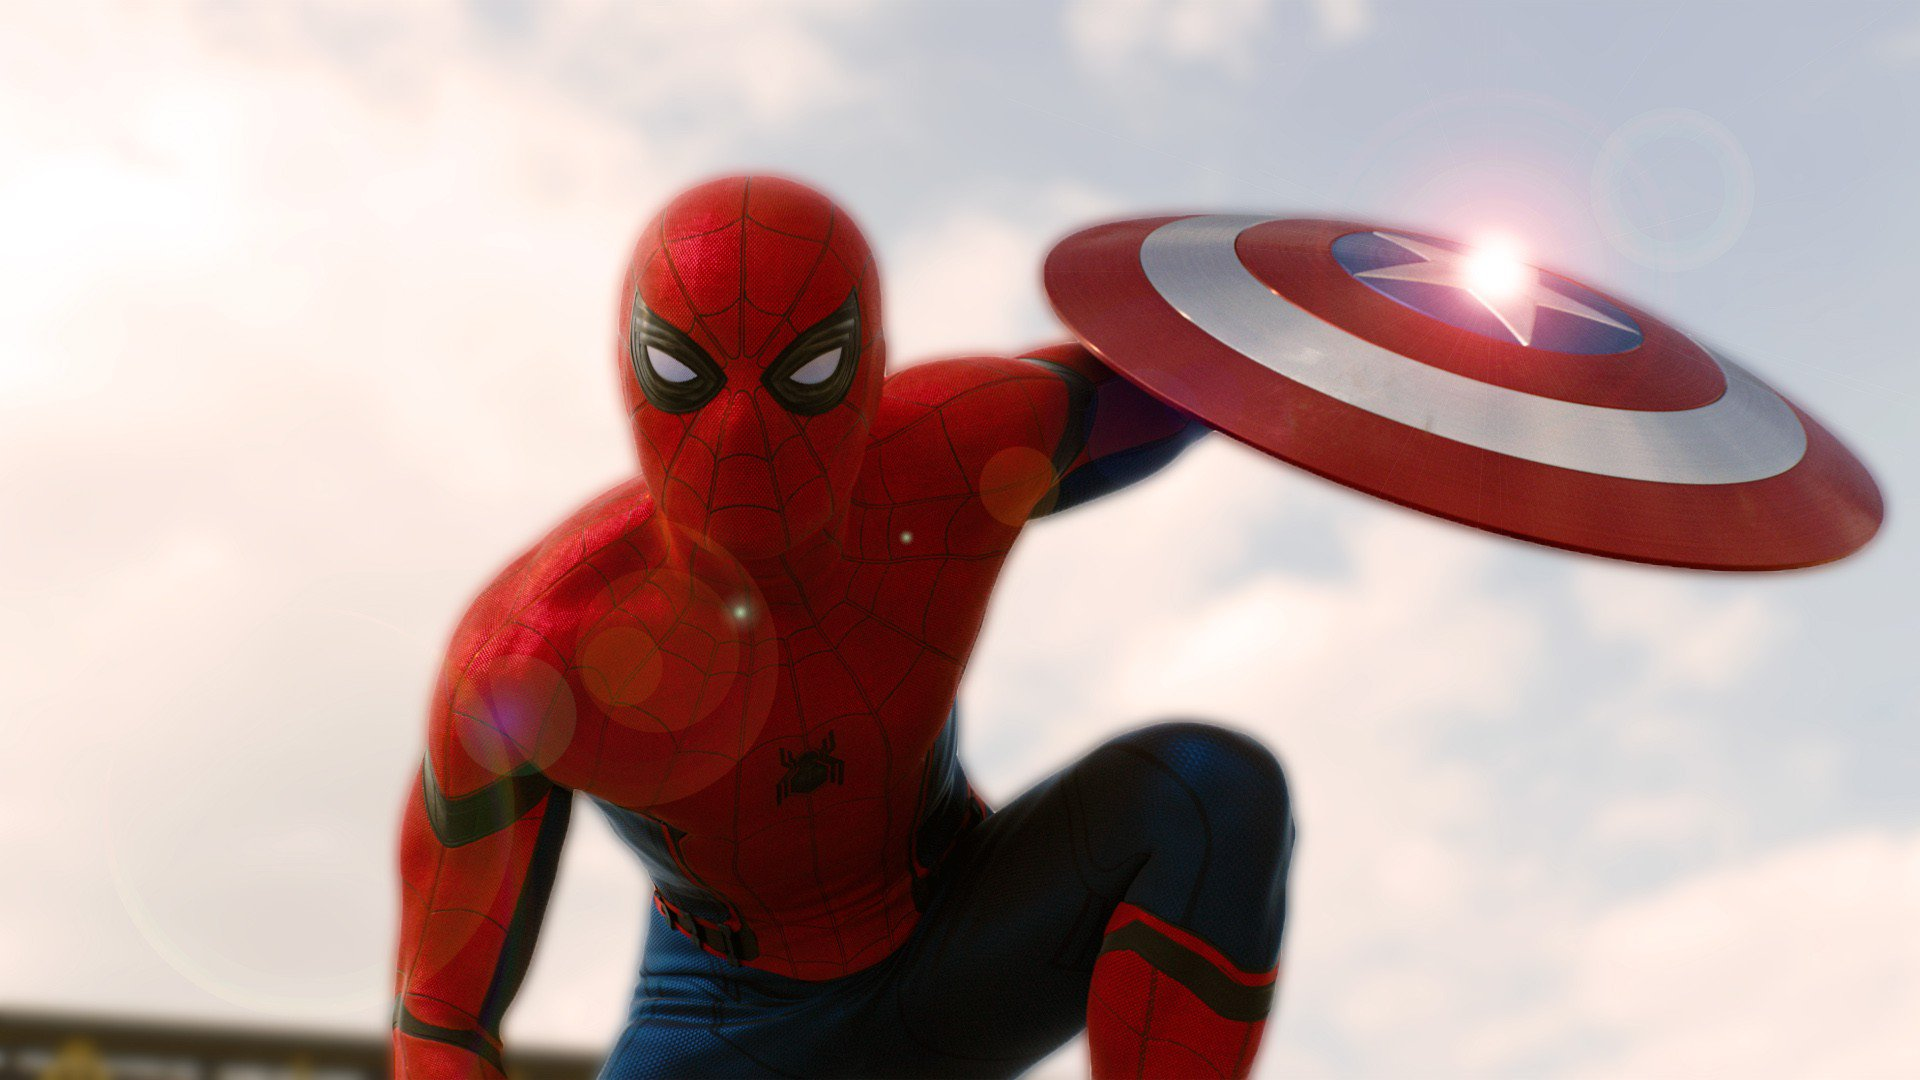 640x960 spider man in captain america civil war iphone 4 - Spider hd images download ...